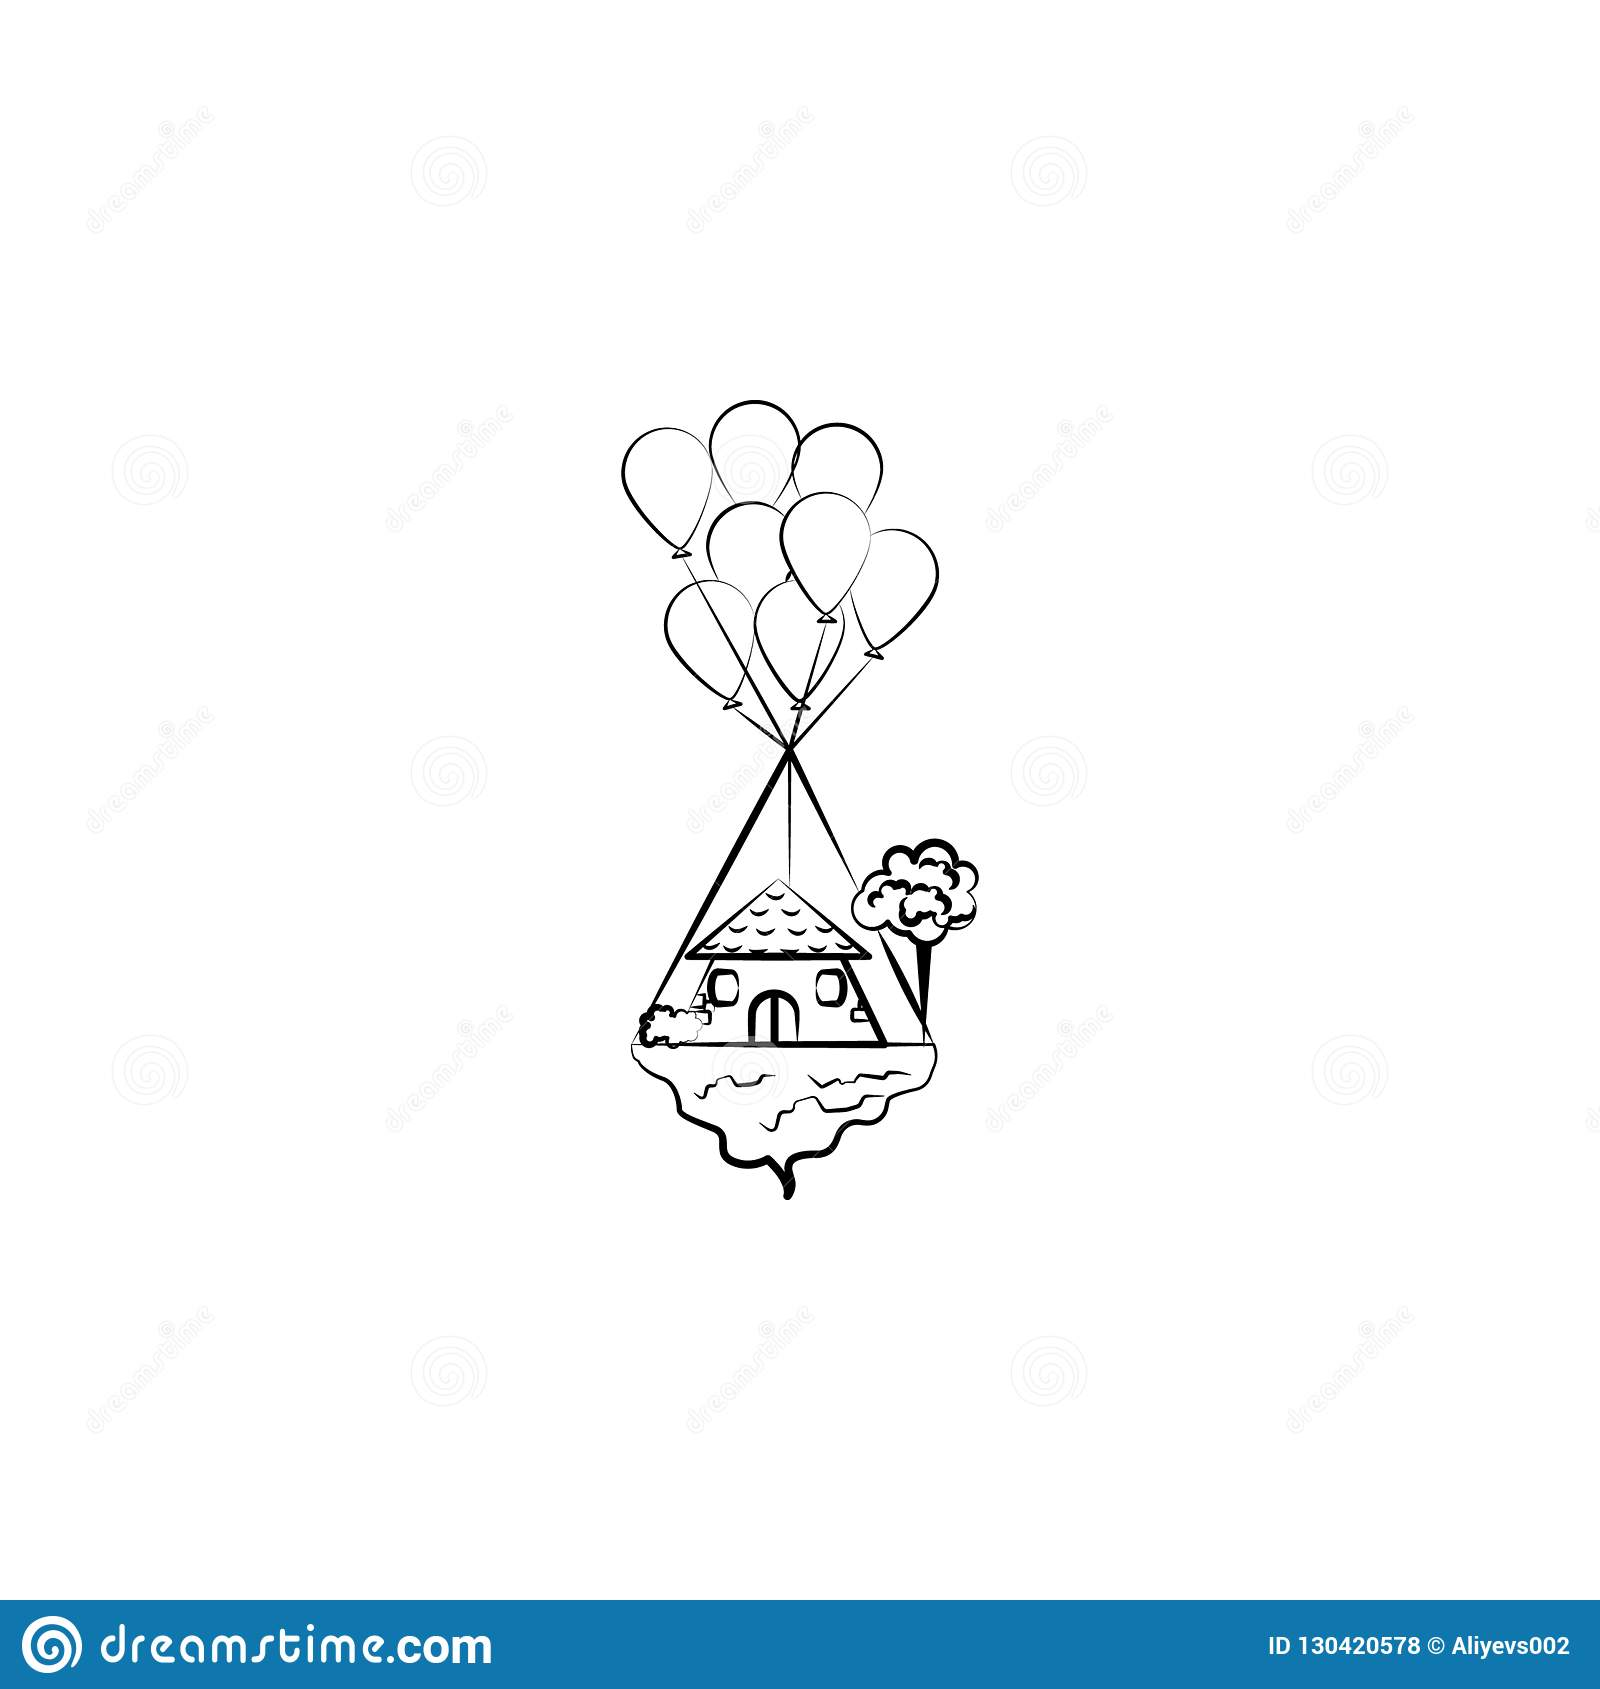 hight resolution of house hand drawn stock illustrations 24 679 house hand drawn stock illustrations vectors clipart dreamstime